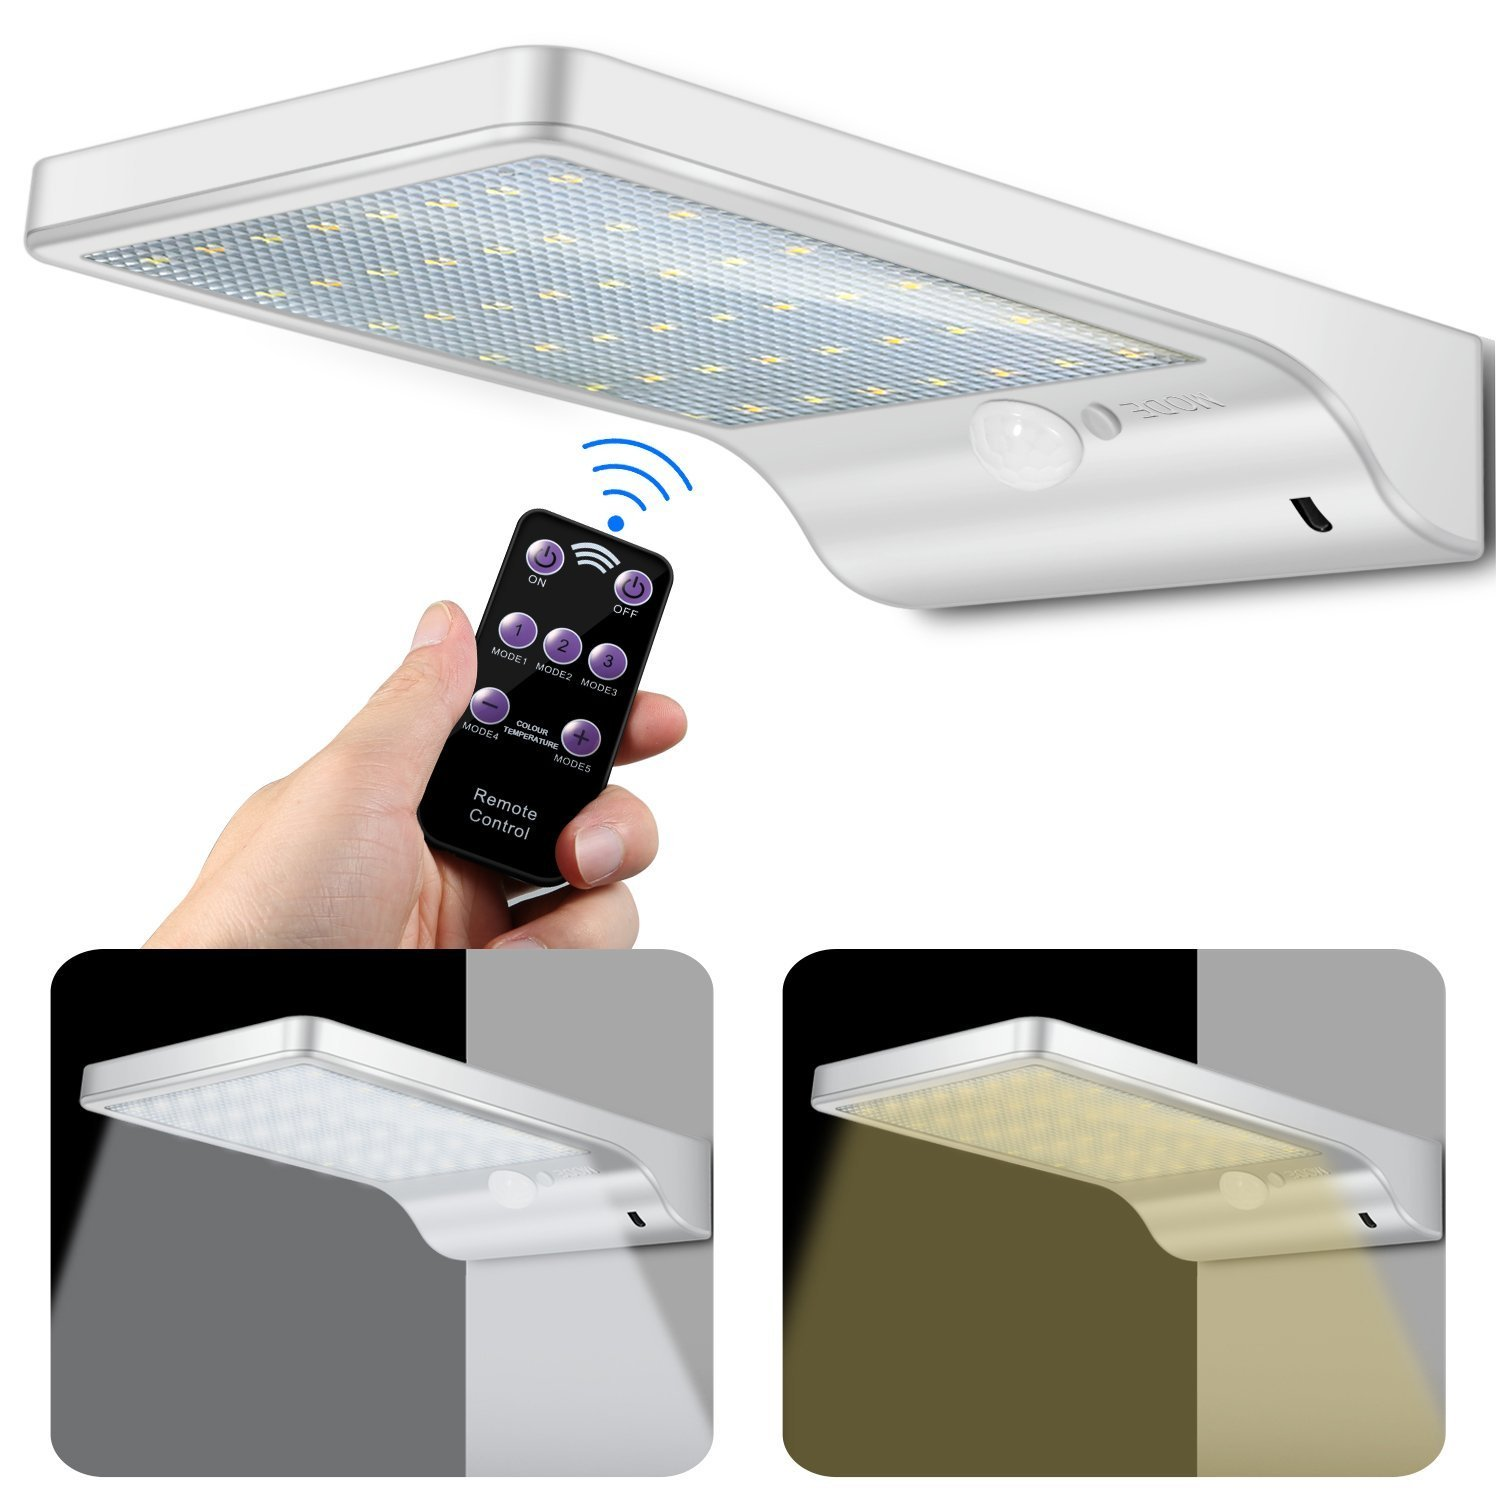 48 LED Solar Lights Outdoor, Motion Sensor Wall Sconces Light with Remote Control and 7 Adjustable Color Temperatures from Cool White to Warm White (Cool + Warm White)